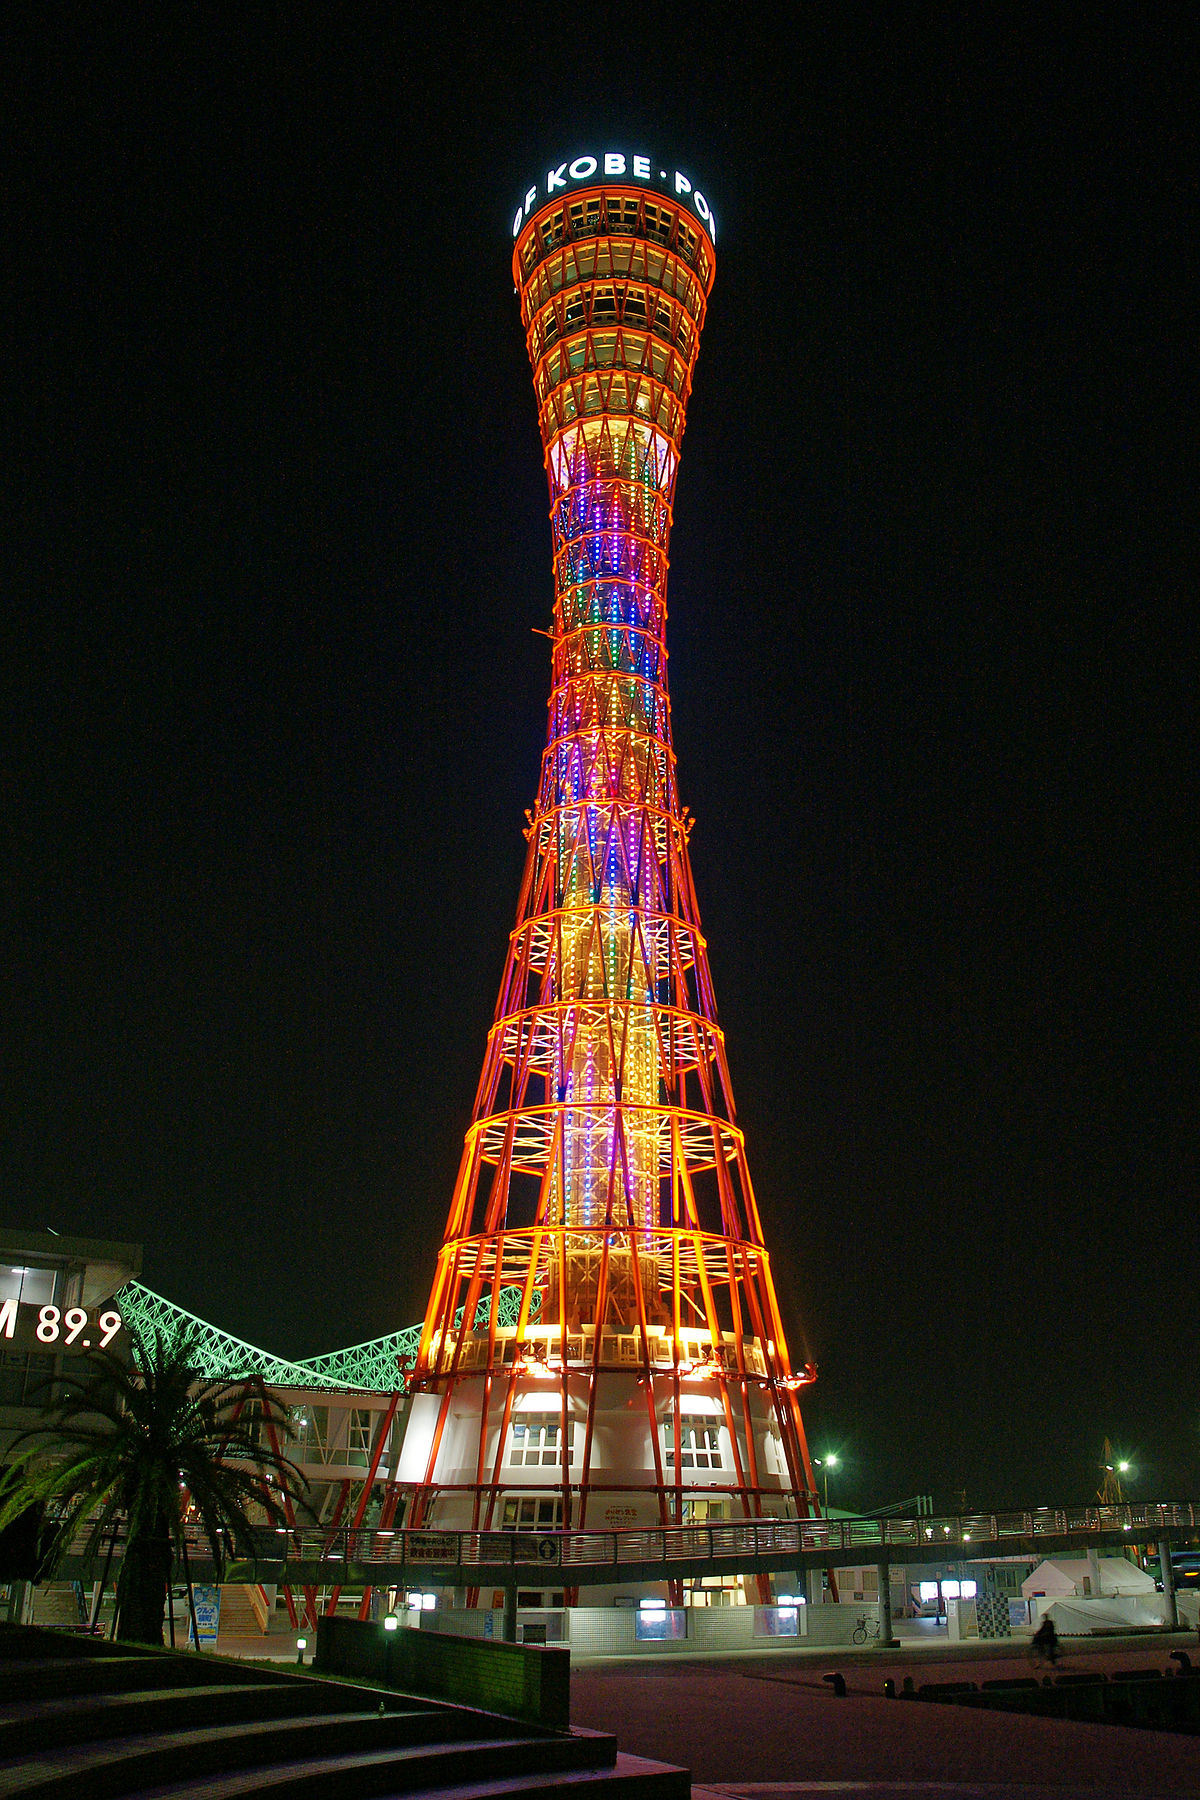 1200px-Kobe_Port_Tower03bs3200  Form Example on day probationary, day probationary period agreement, day performance appraisal, day performance review, day performance evaluation, day employee performance review, day probationary period, what is mcs, day employee probation,